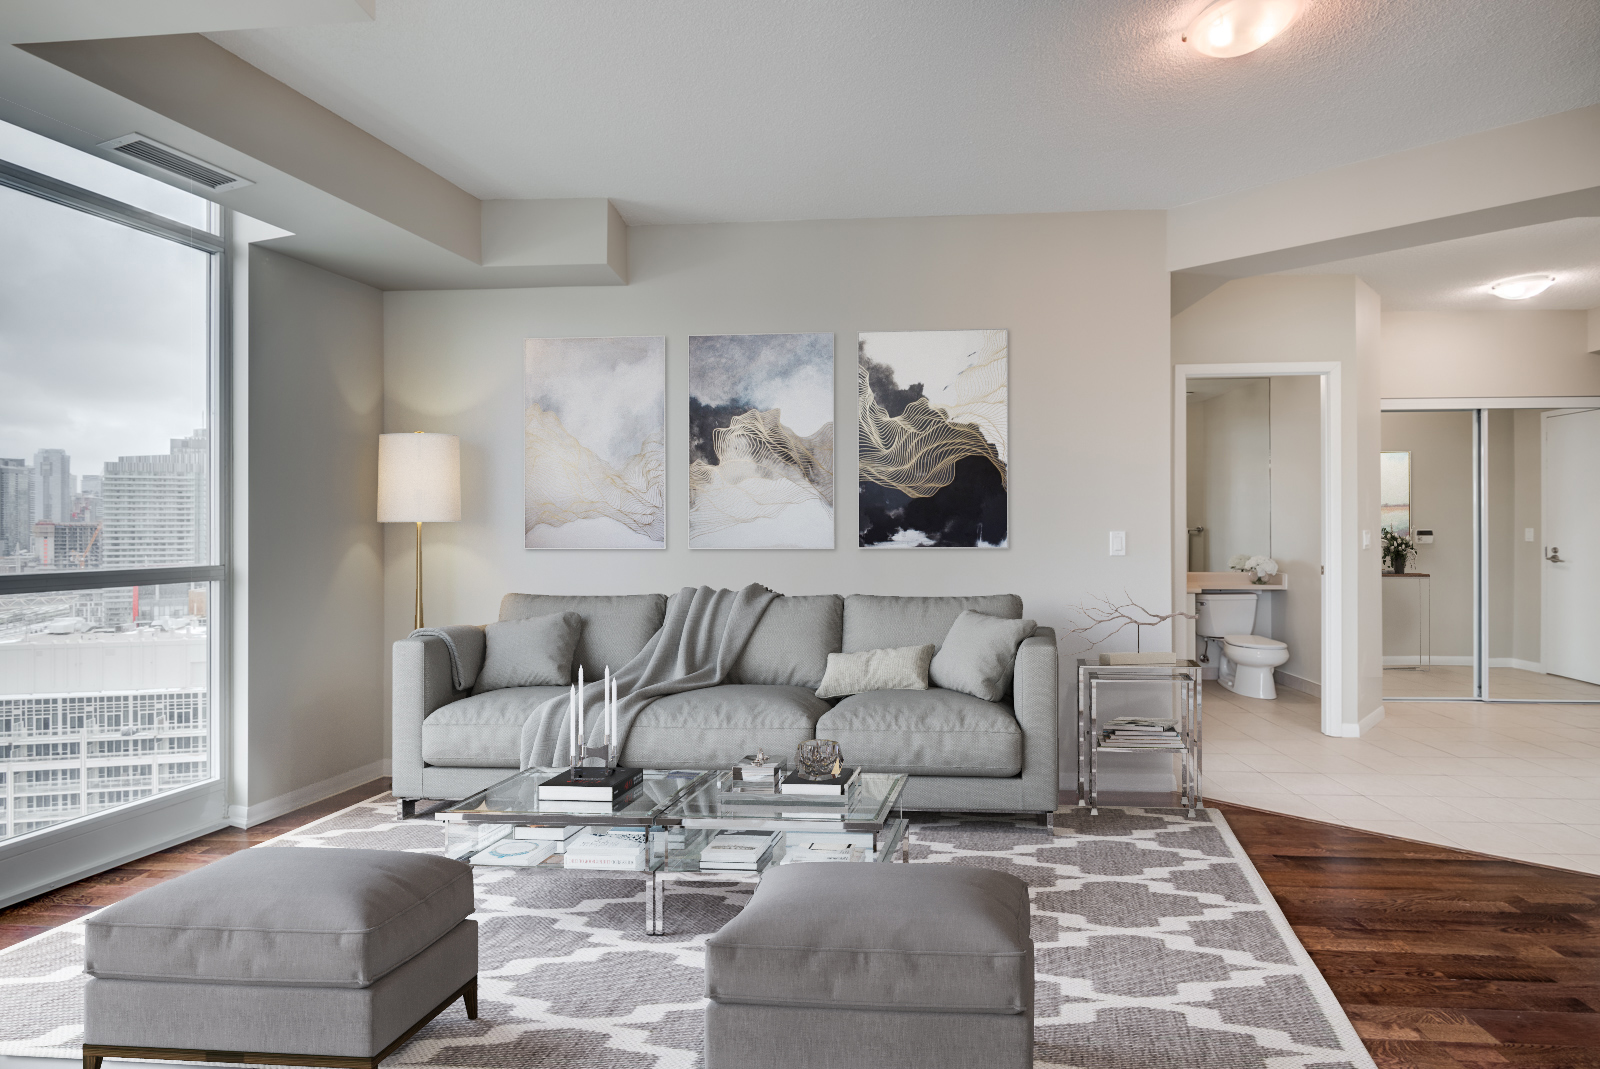 3D render of 215 Fort York Blvd living room with gray sofa, 2 ottomans, diamond-pattern rug and paintings.